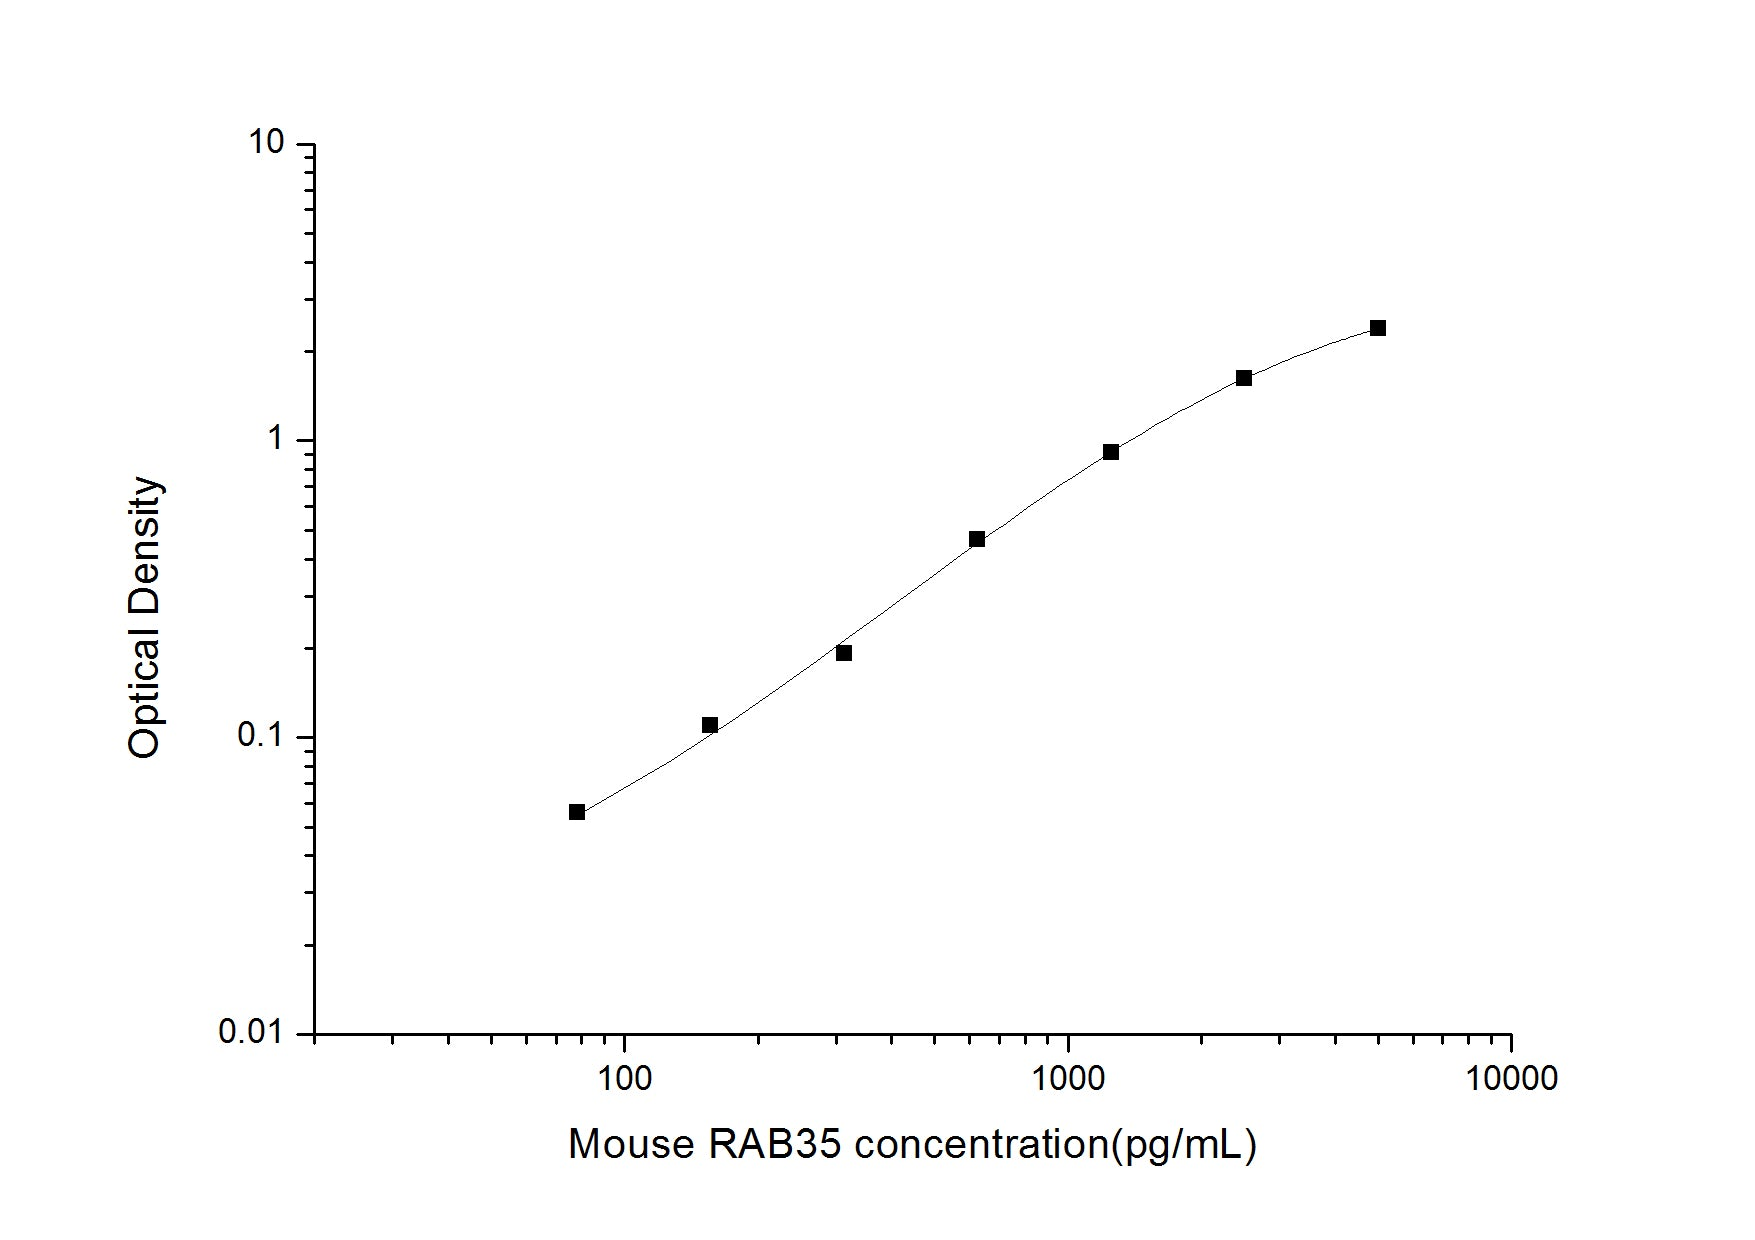 Buy Mouse RAB35(Ras-relatedproteinRab-35) ELISAKit from ElabSciences